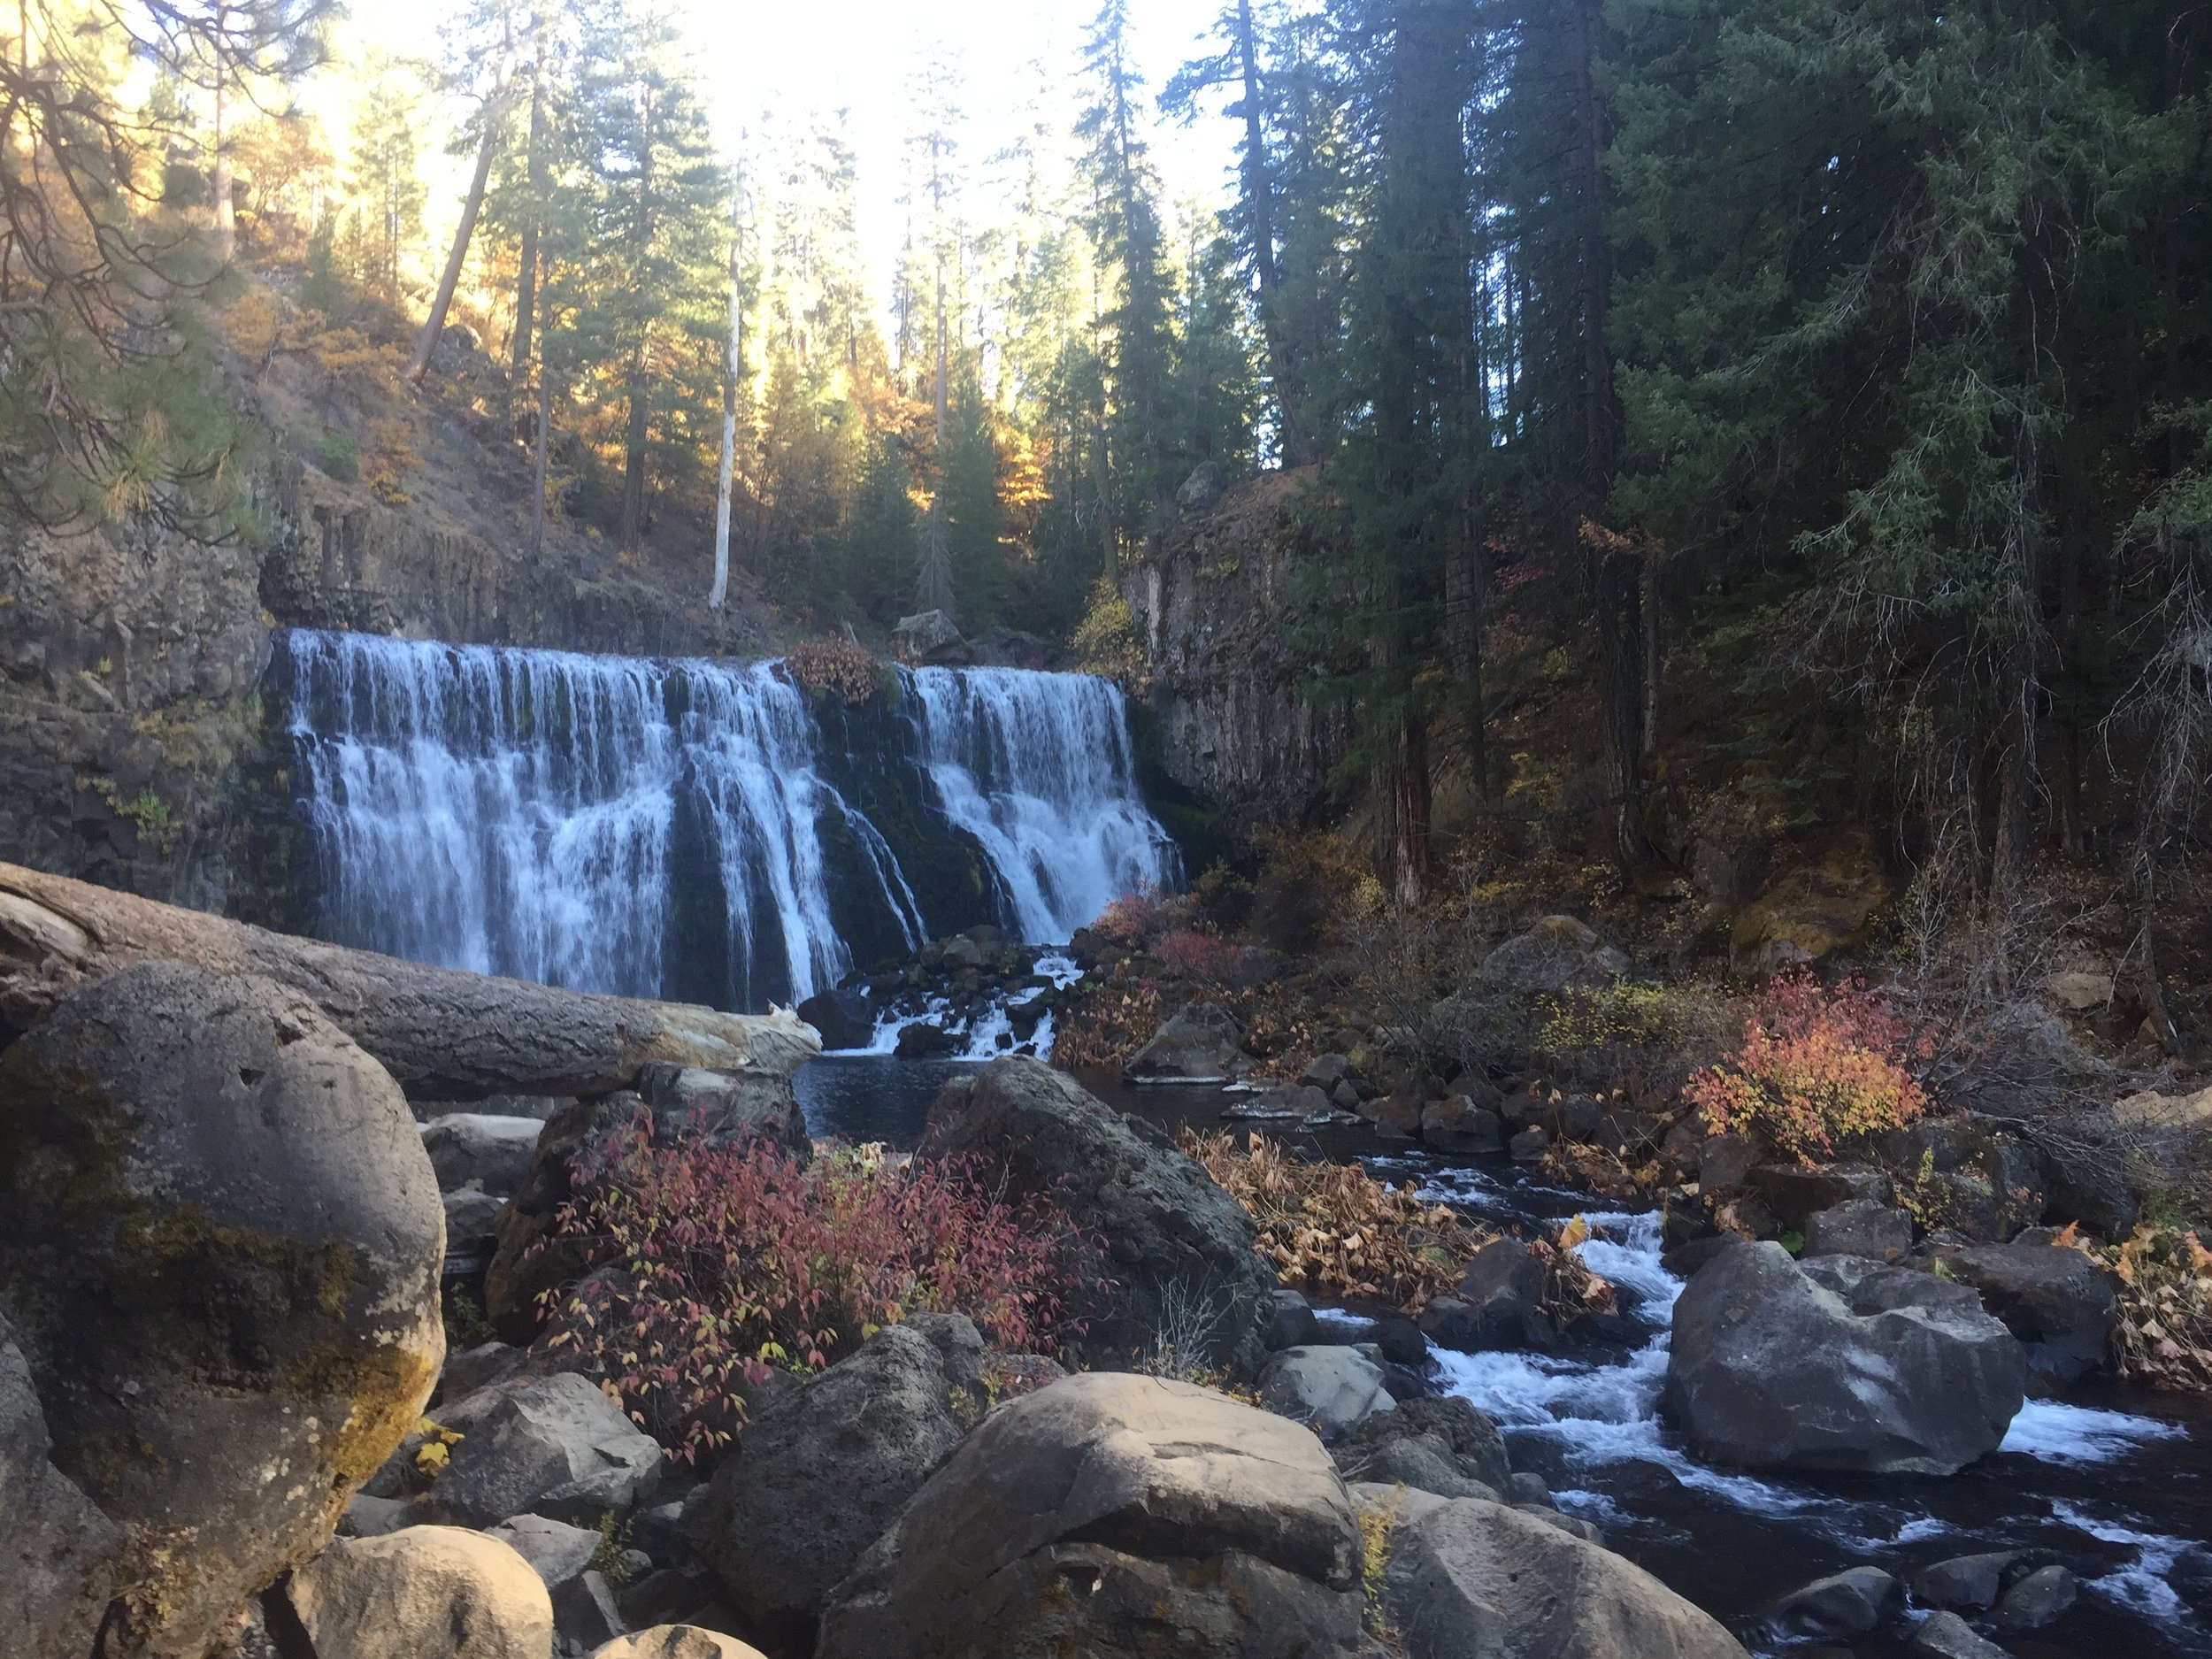 McCloud Falls - Excursion adventure to amazing locations of gushing water falls, amazing hiking, beautiful nature and enjoyable sites.